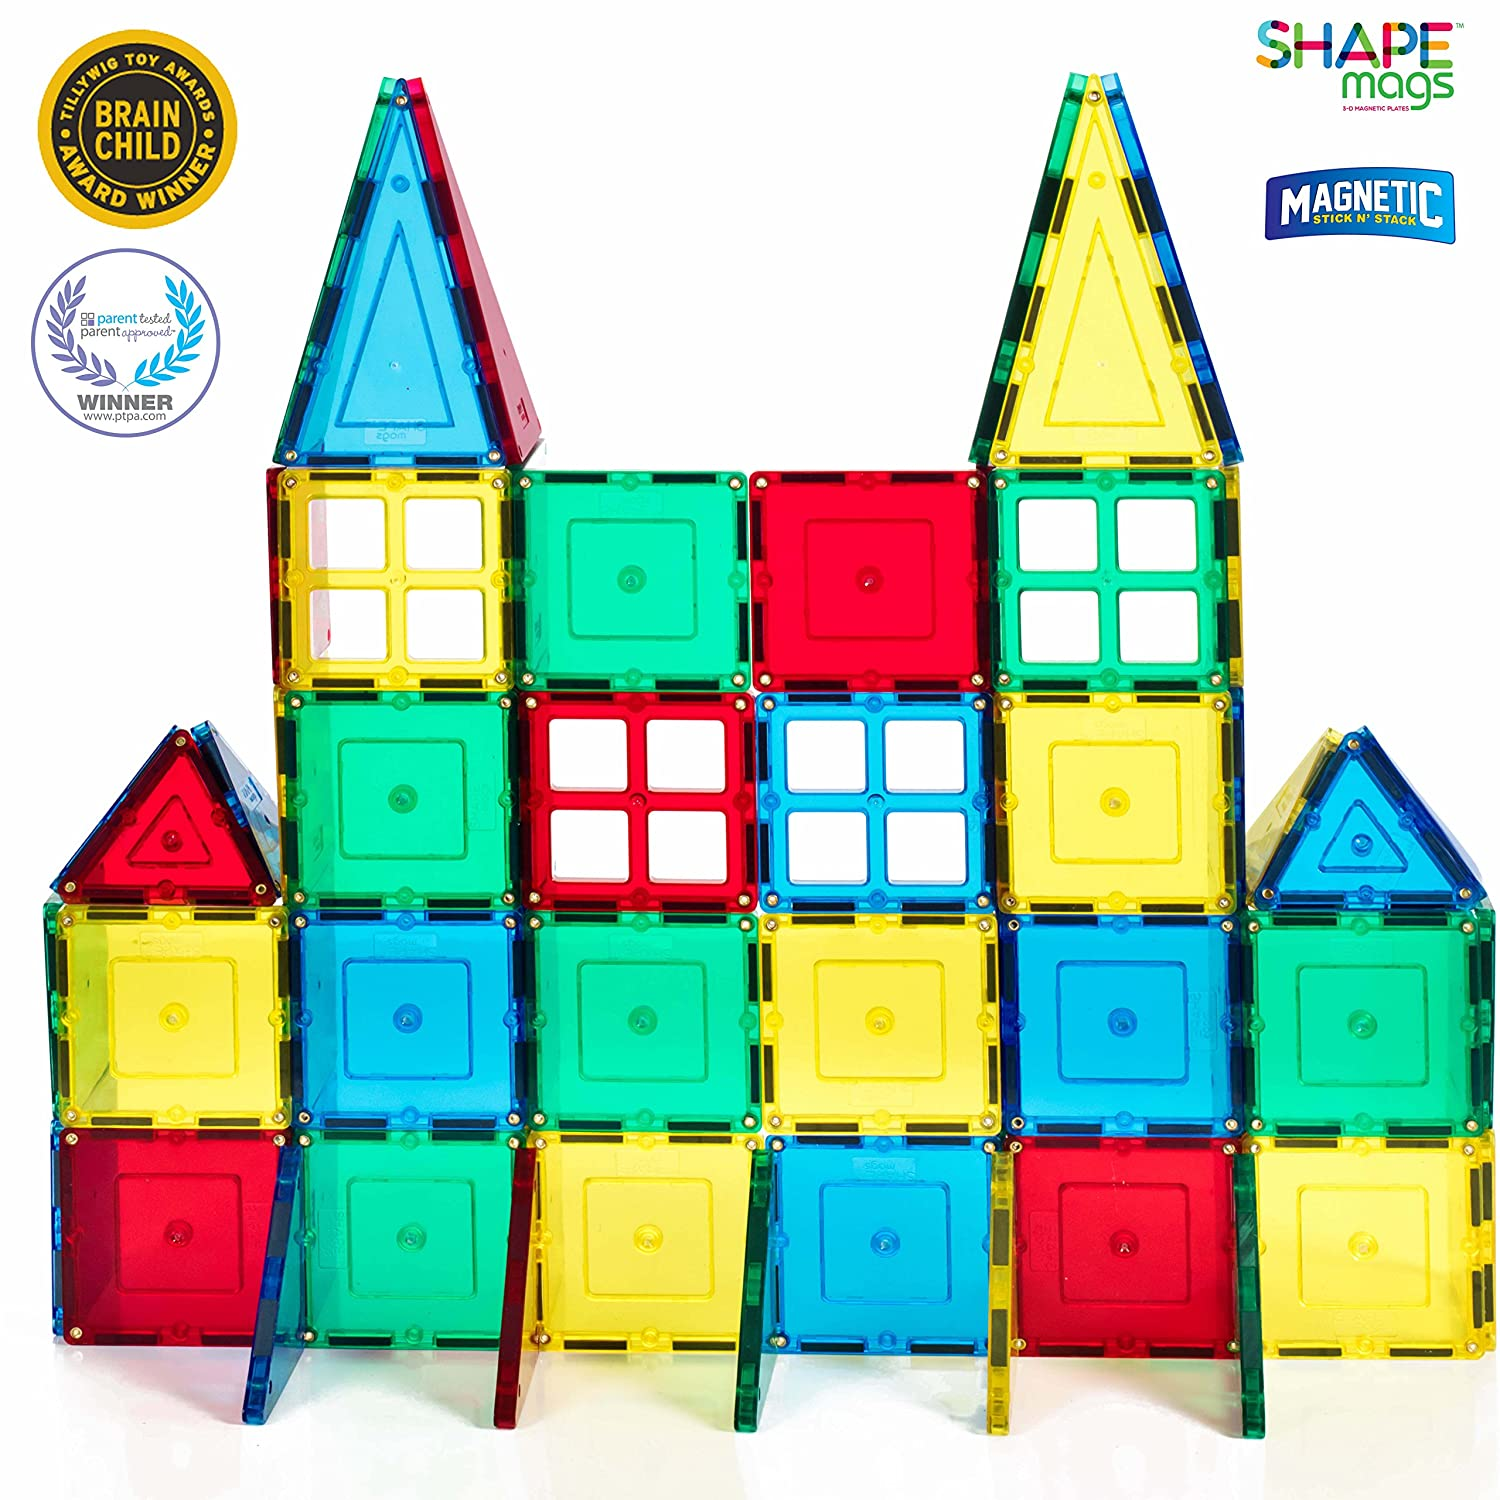 The Best Magnetic Building Tiles 4